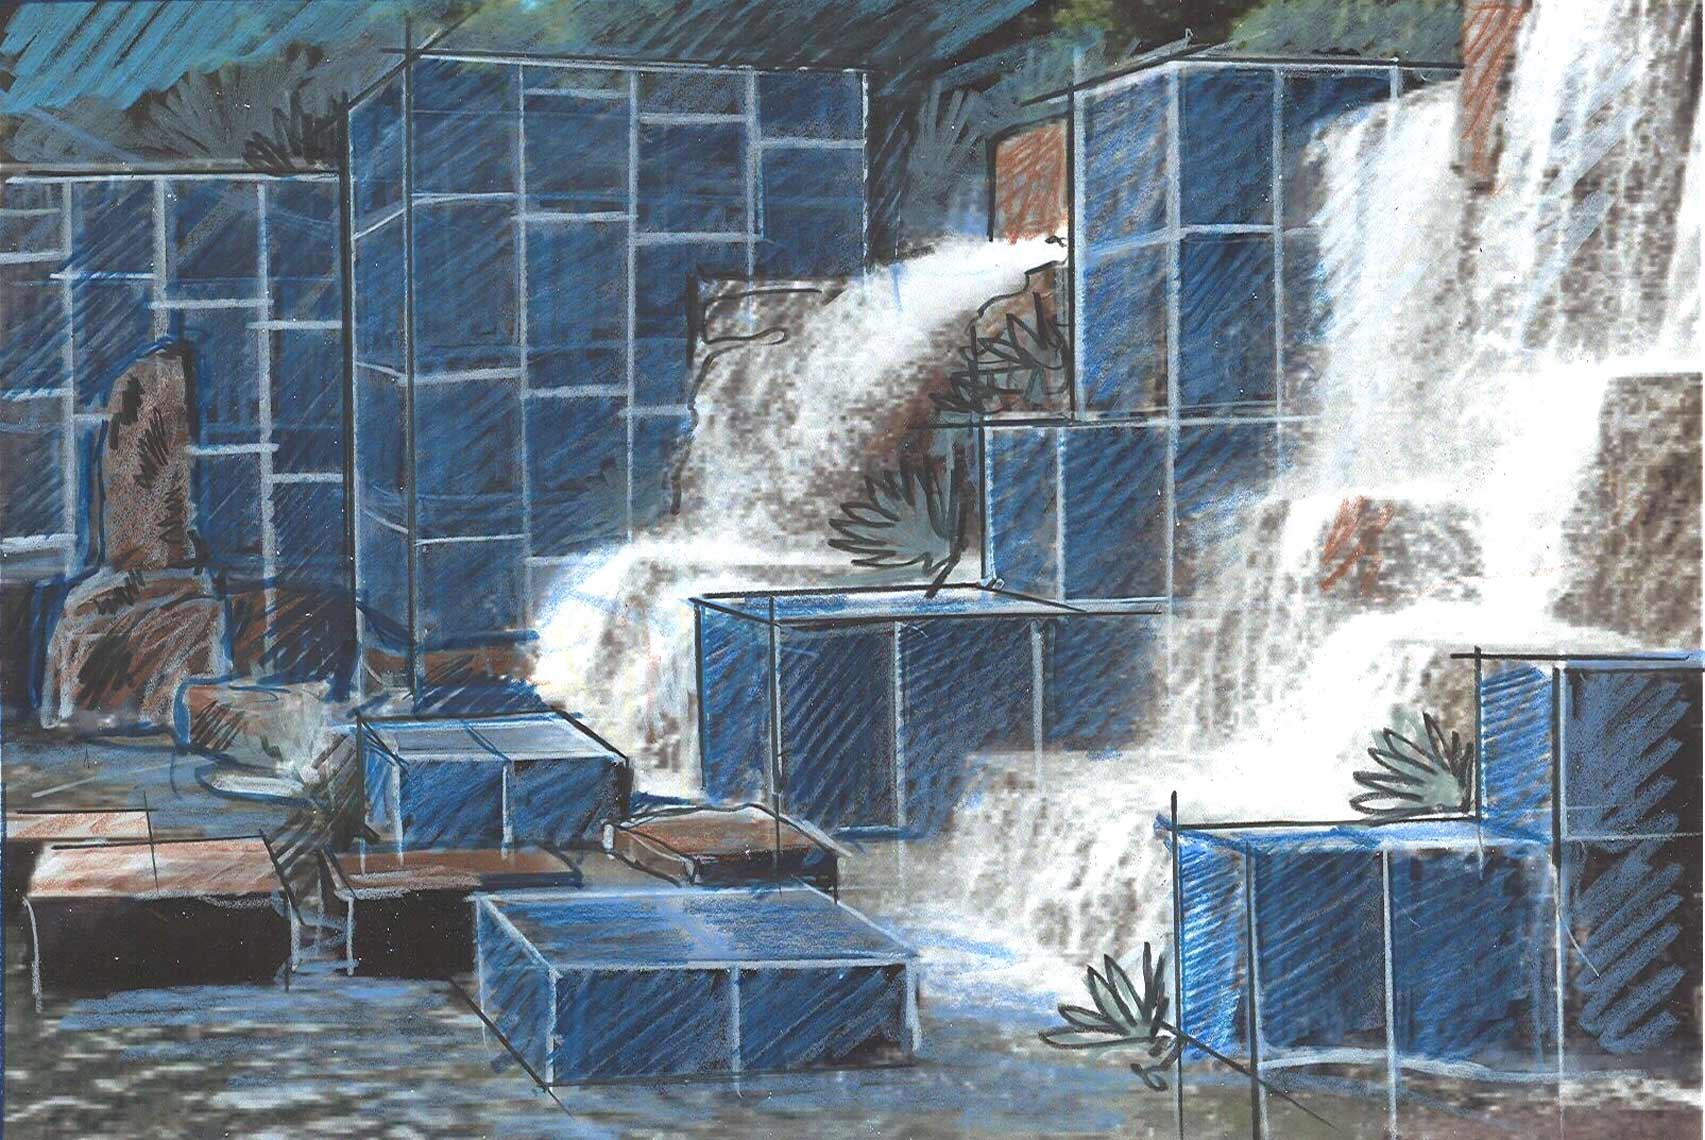 solar-quarry concept sketch by Peter Diepenbrock